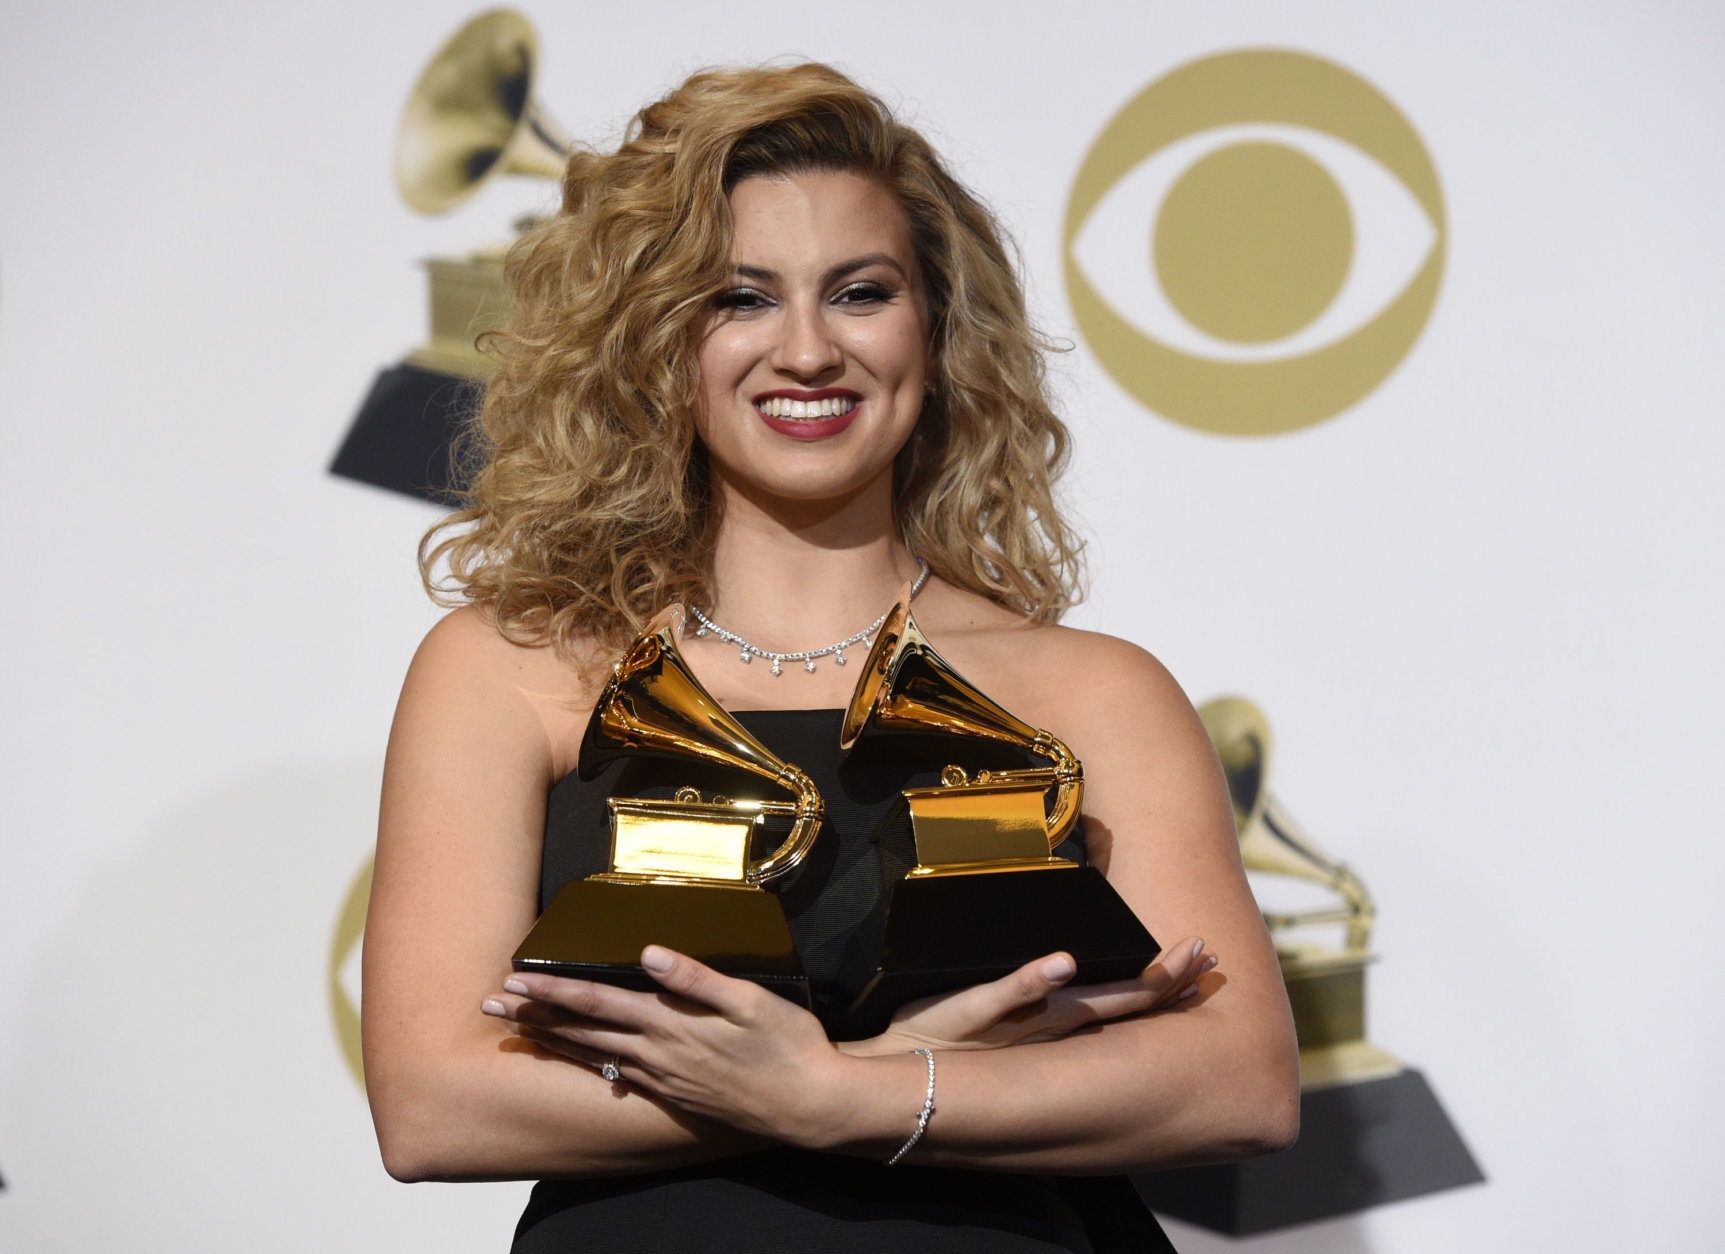 """Tori Kelly poses in the press room with the awards for best gospel performance/song for """"Never Alone"""" and best gospel album for """"Hiding Place"""" at the 61st annual Grammy Awards at the Staples Center on Sunday, Feb. 10, 2019, in Los Angeles. (Photo by Chris Pizzello/Invision/AP)"""